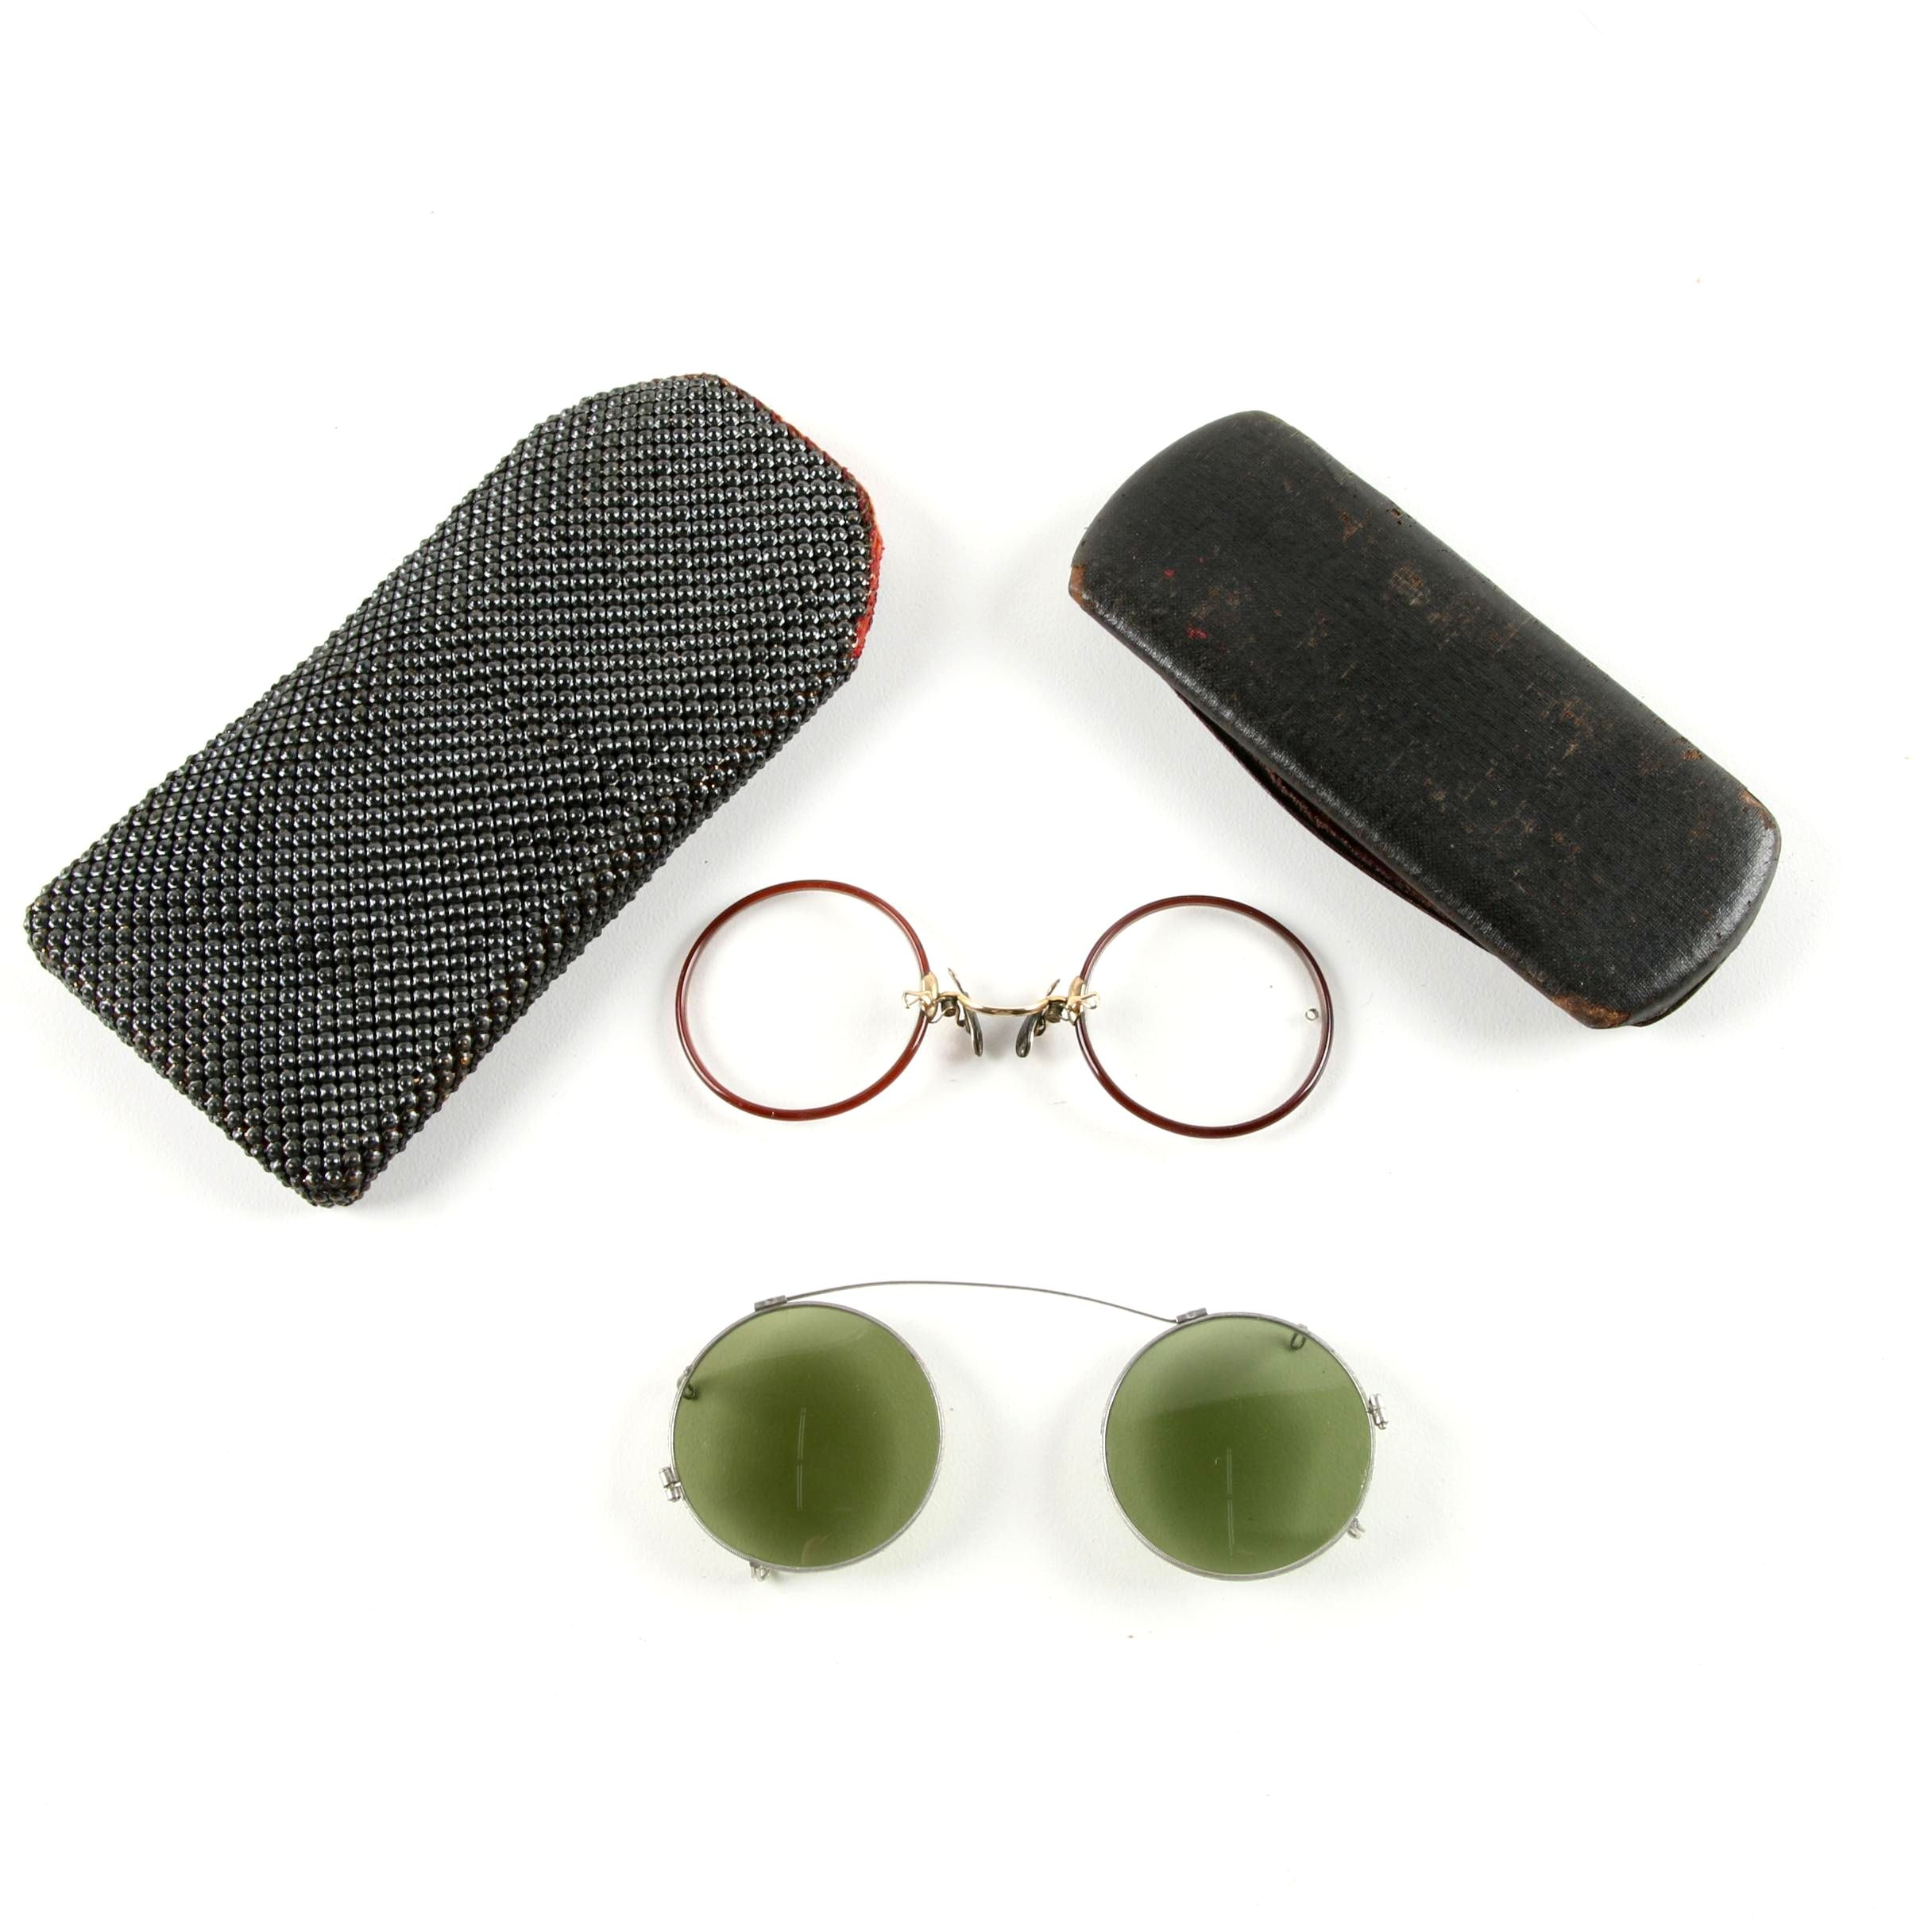 Antique Round Rim Pince Nez Gold-Filled Eyeglasses and Clip-On Sunglasses